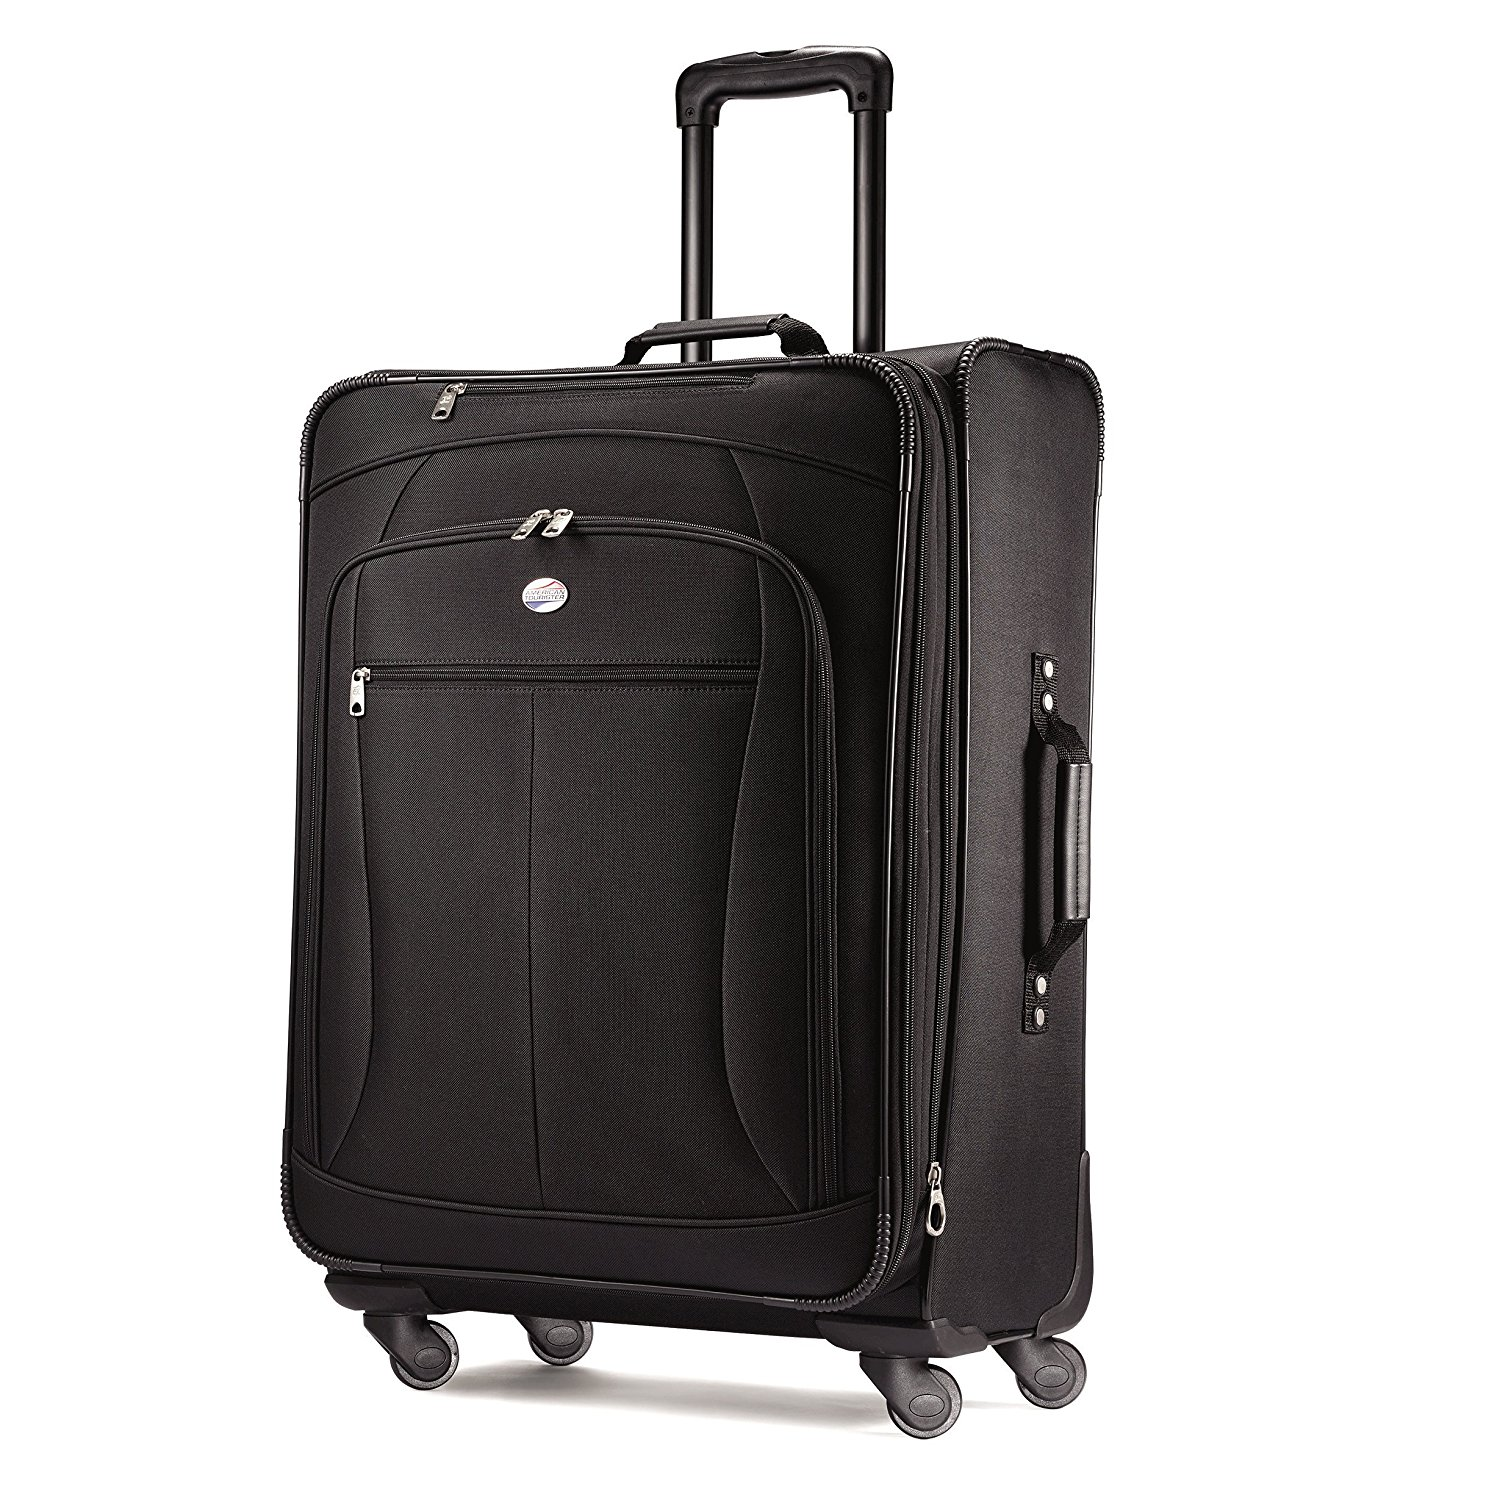 96d983e5346 Get Quotations · American Tourister Luggage Pop Extra 29